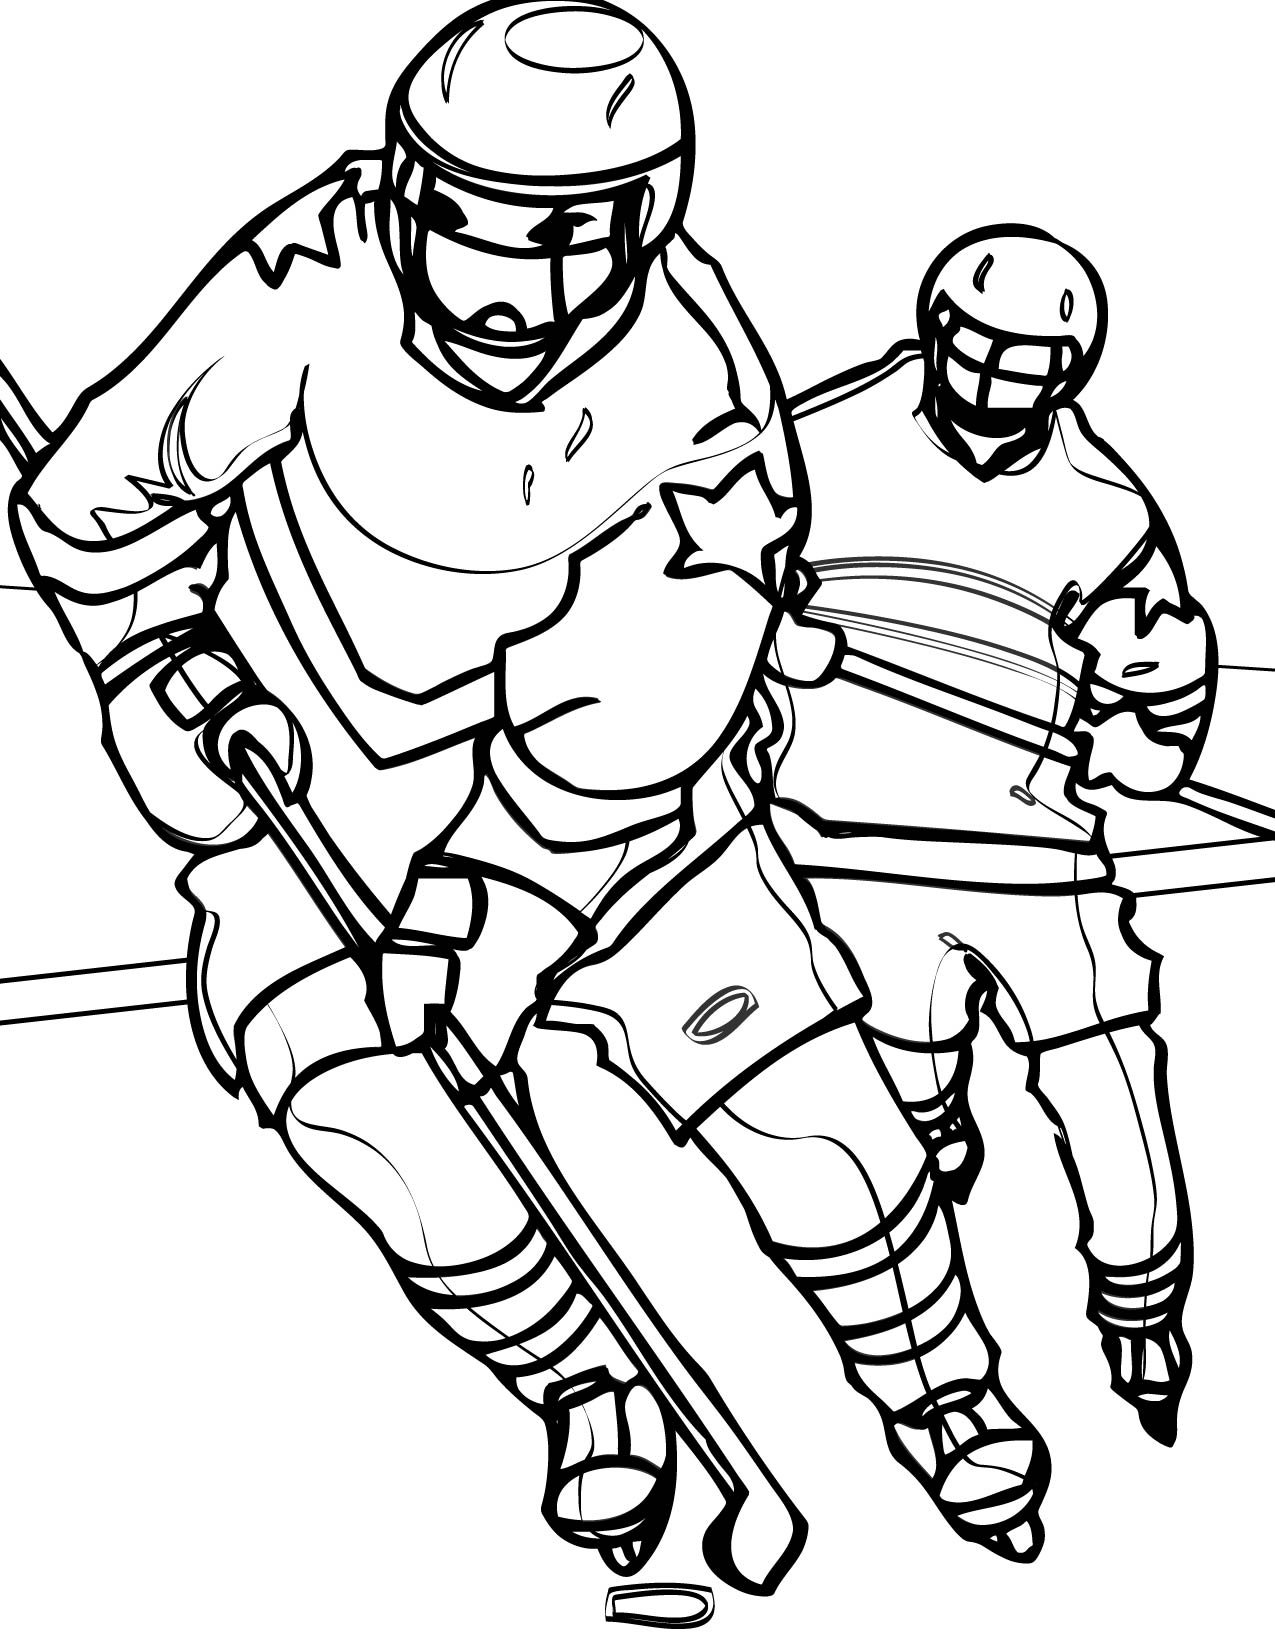 sports coloring sheets - Printable Sports Coloring Pages